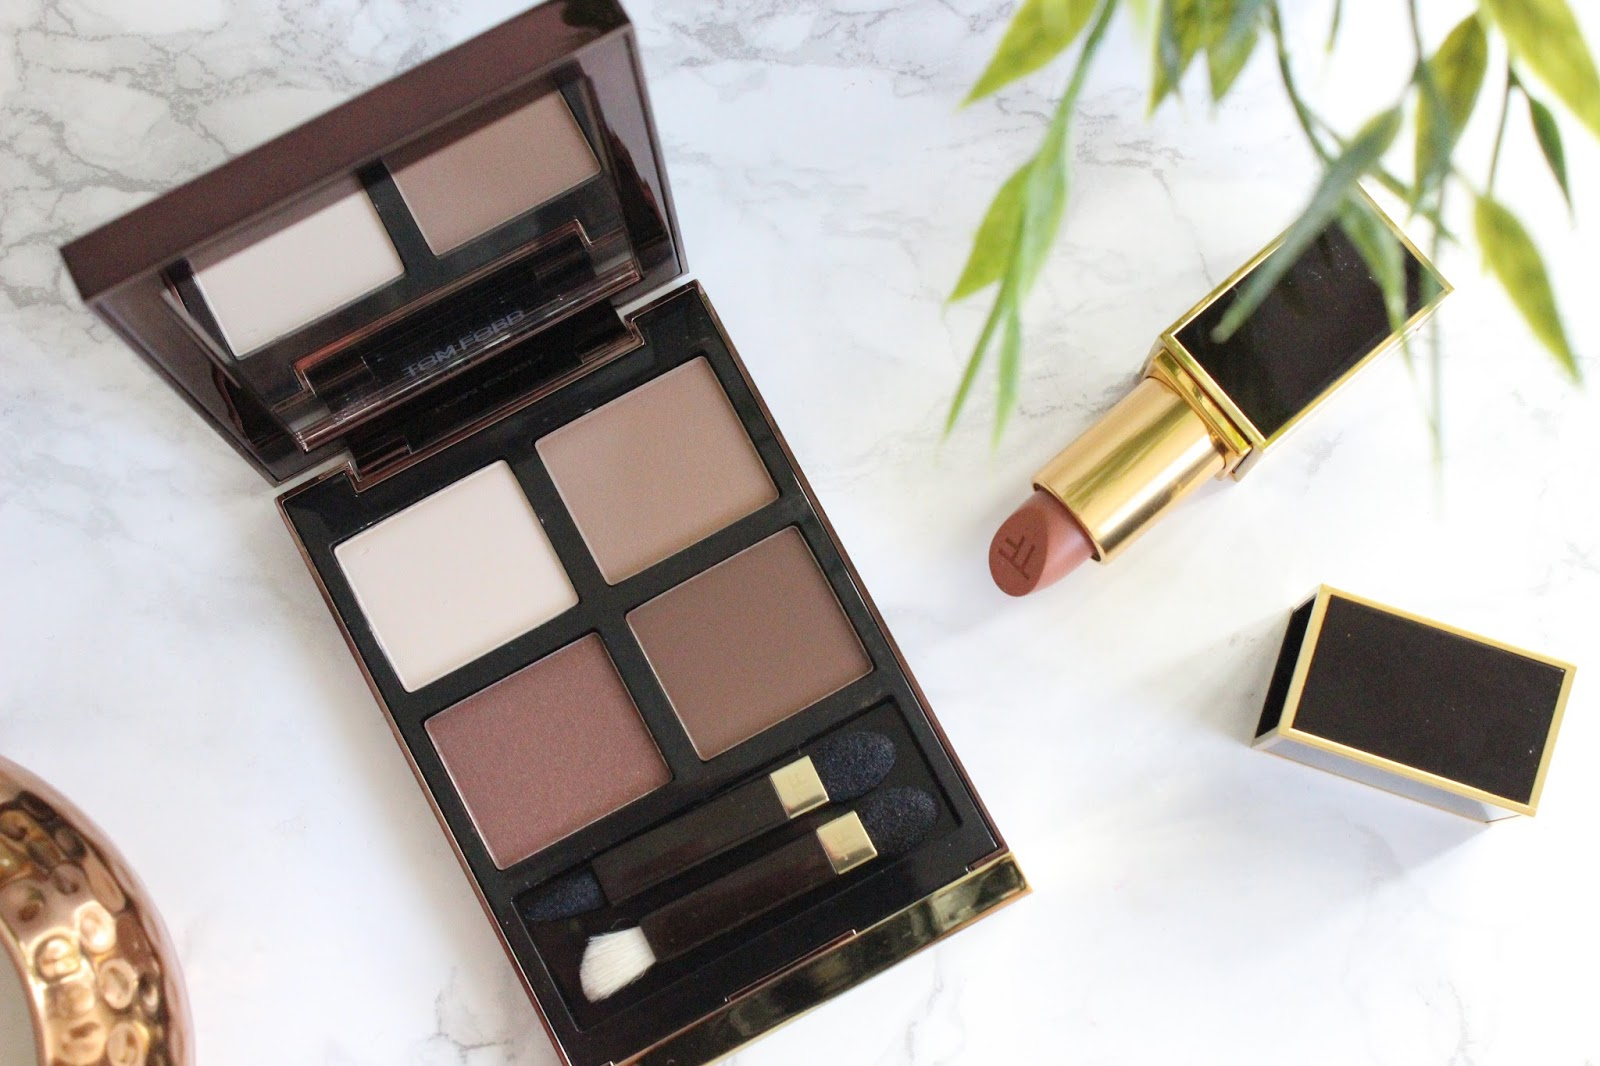 Tom Ford Eyeshadow Quad In Cocoa Mirage A Little Pop Of Coral